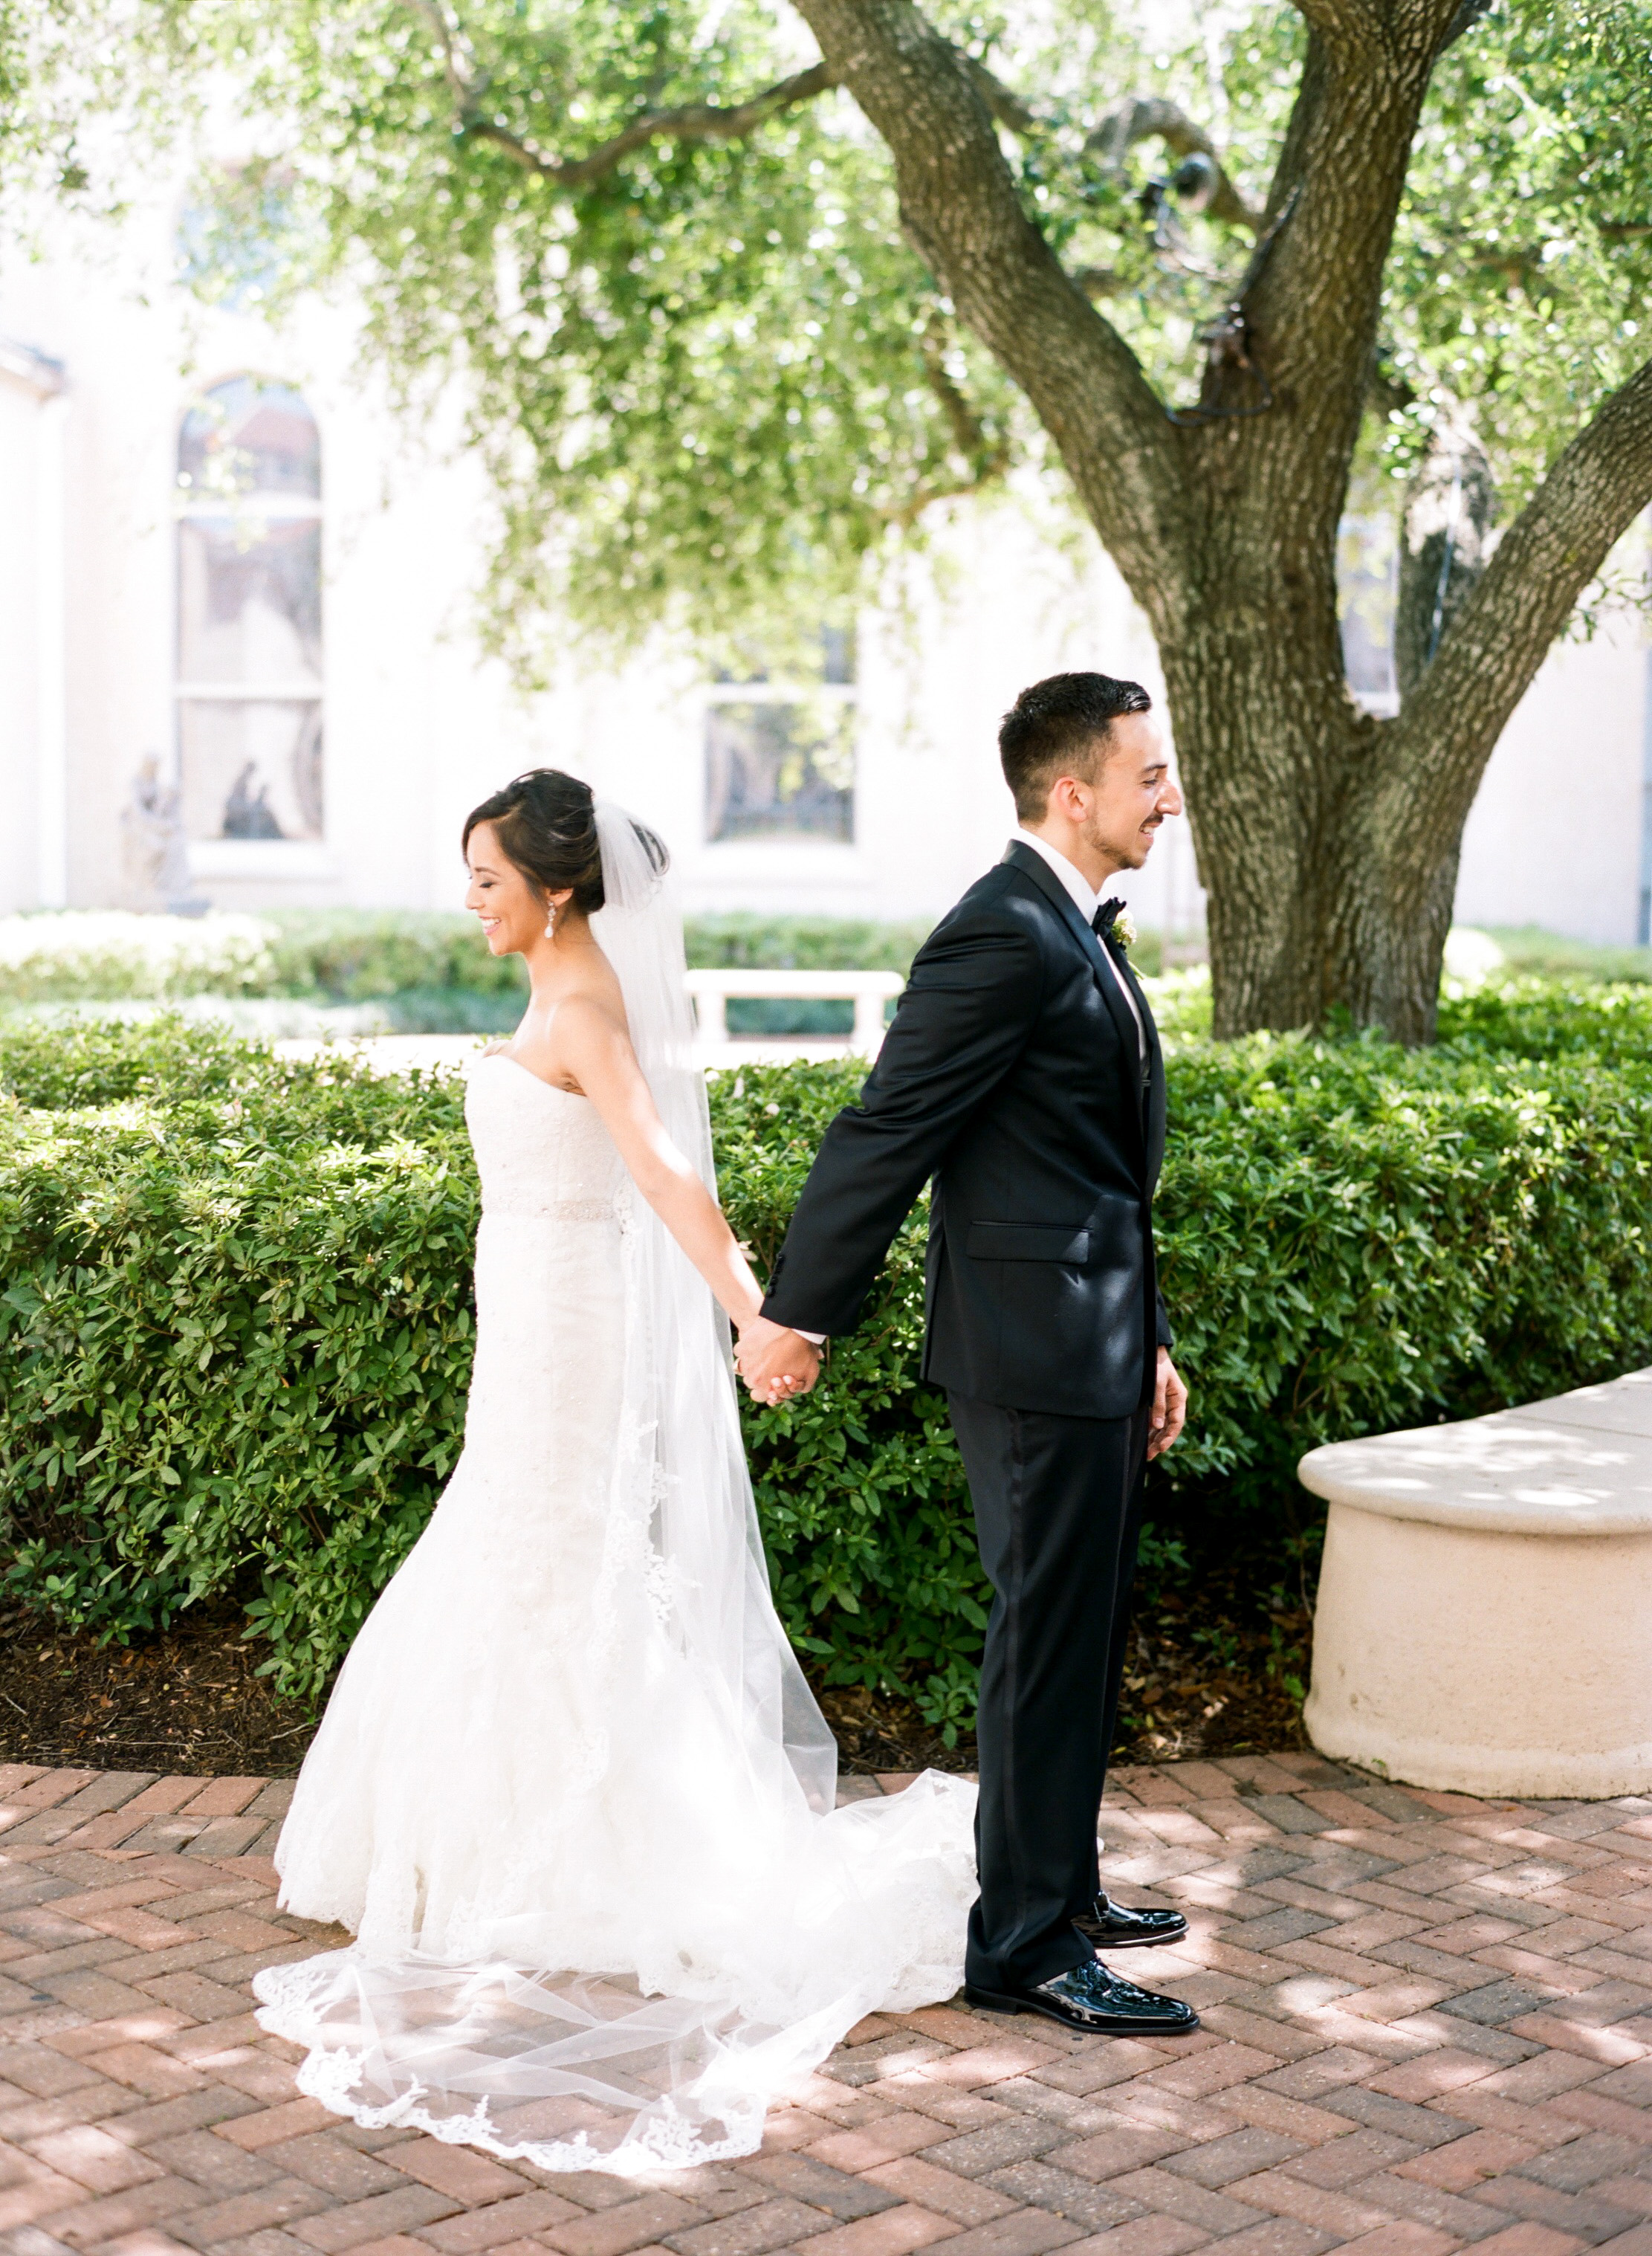 Houston-Wedding-Photography-St.-Anne-Catholic-Church-Houston-Wedding-The-Bell-Tower-on-34th-reception-wedding-film-14.jpg